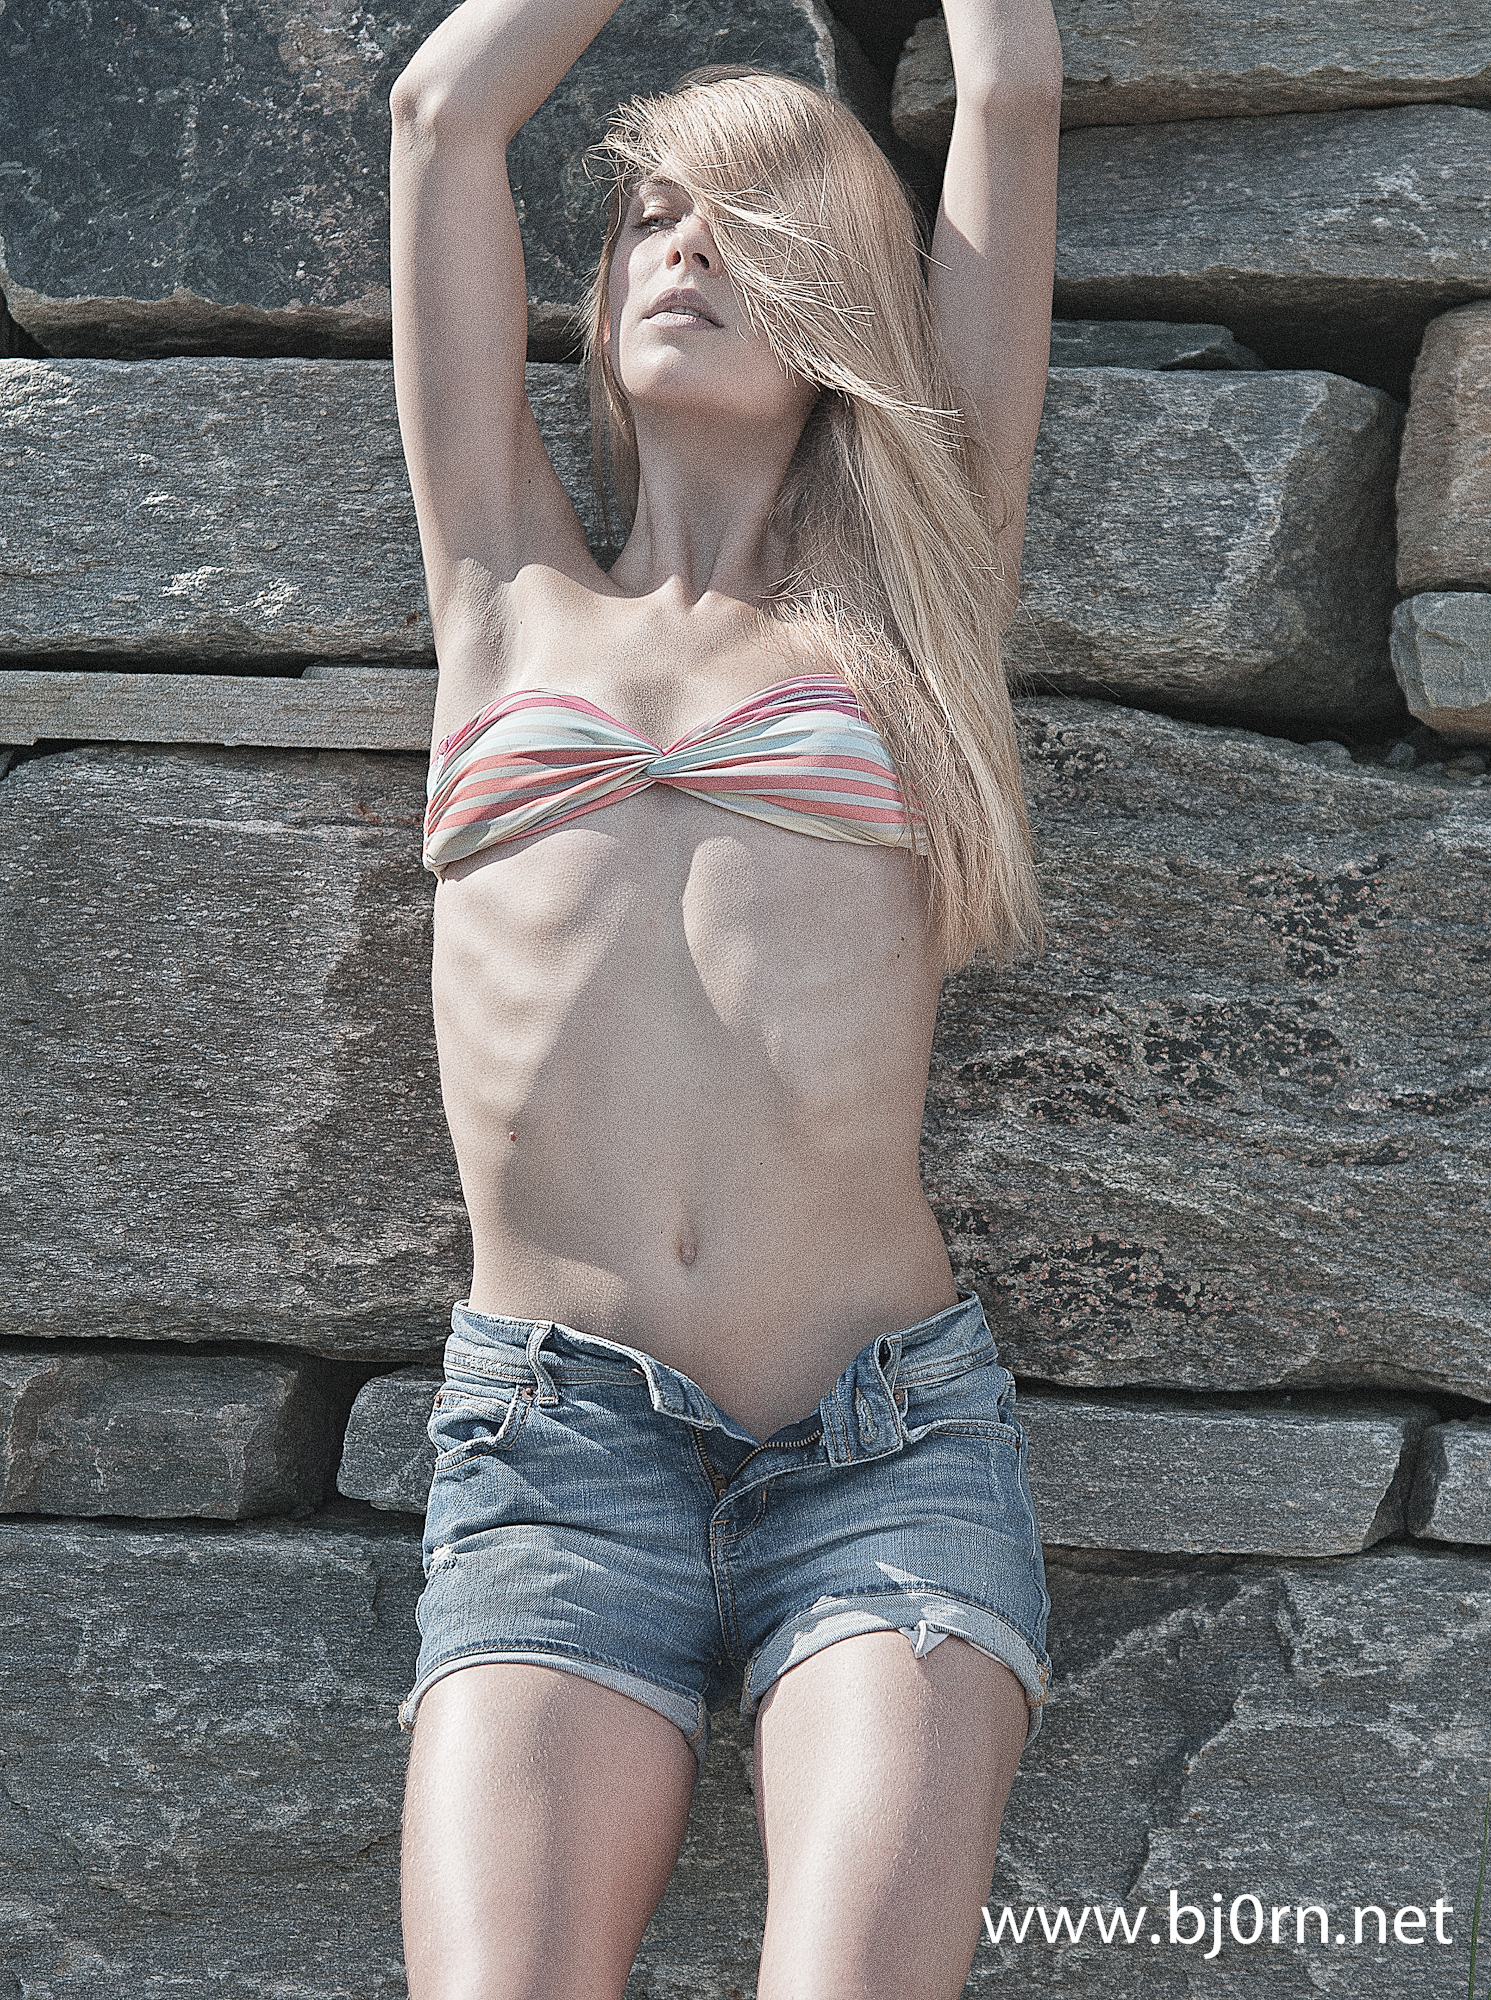 photo: Bjørn Christiansen, model Viktoria Konstanse Strand Kvalsvik (Trend Models)